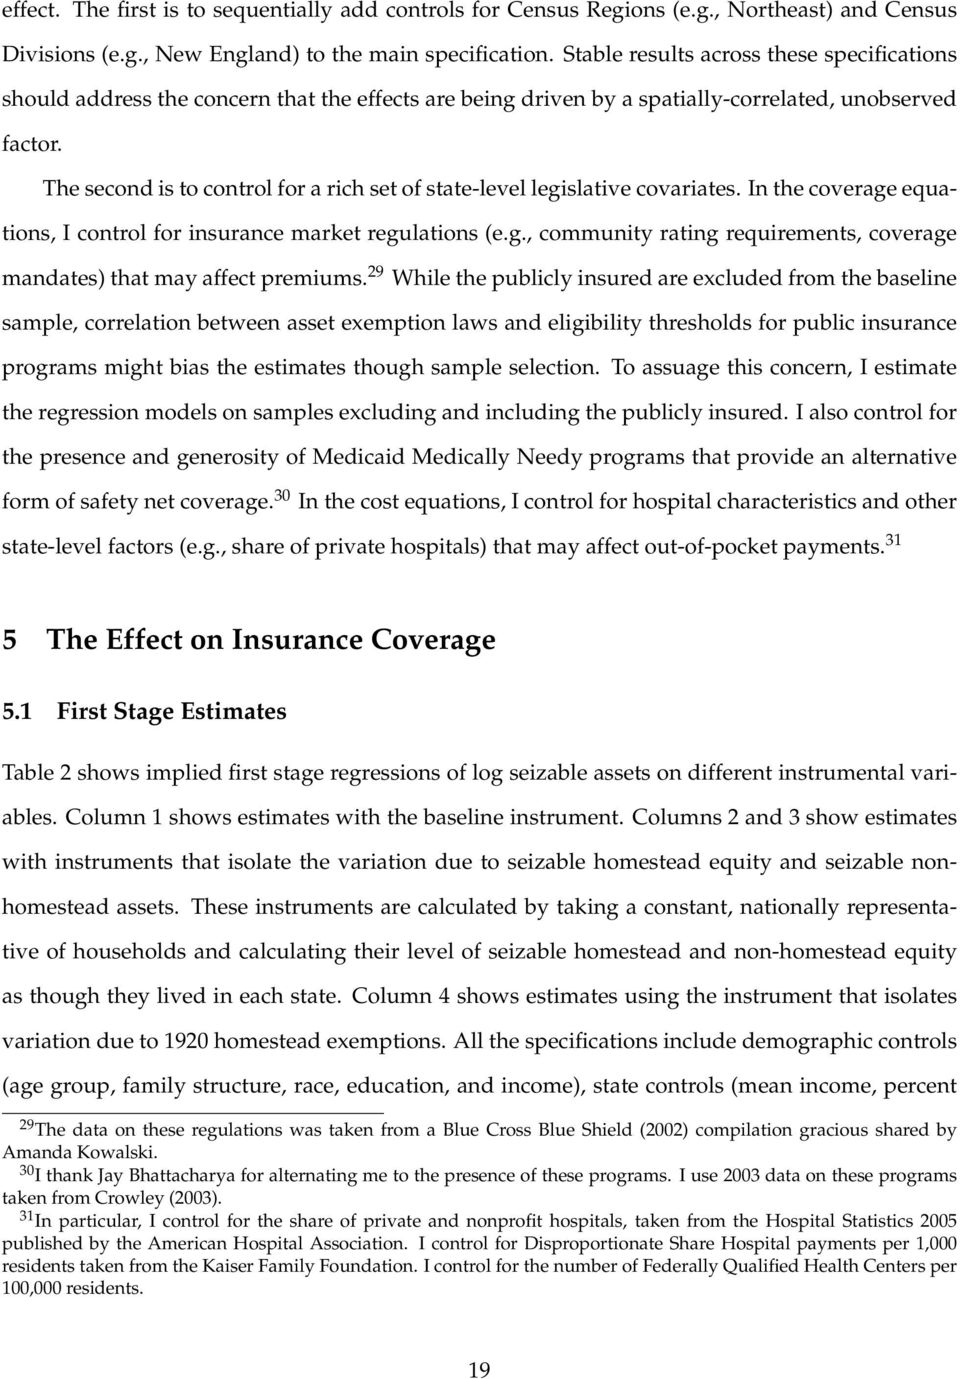 The second is to control for a rich set of state-level legislative covariates. In the coverage equations, I control for insurance market regulations (e.g., community rating requirements, coverage mandates) that may affect premiums.